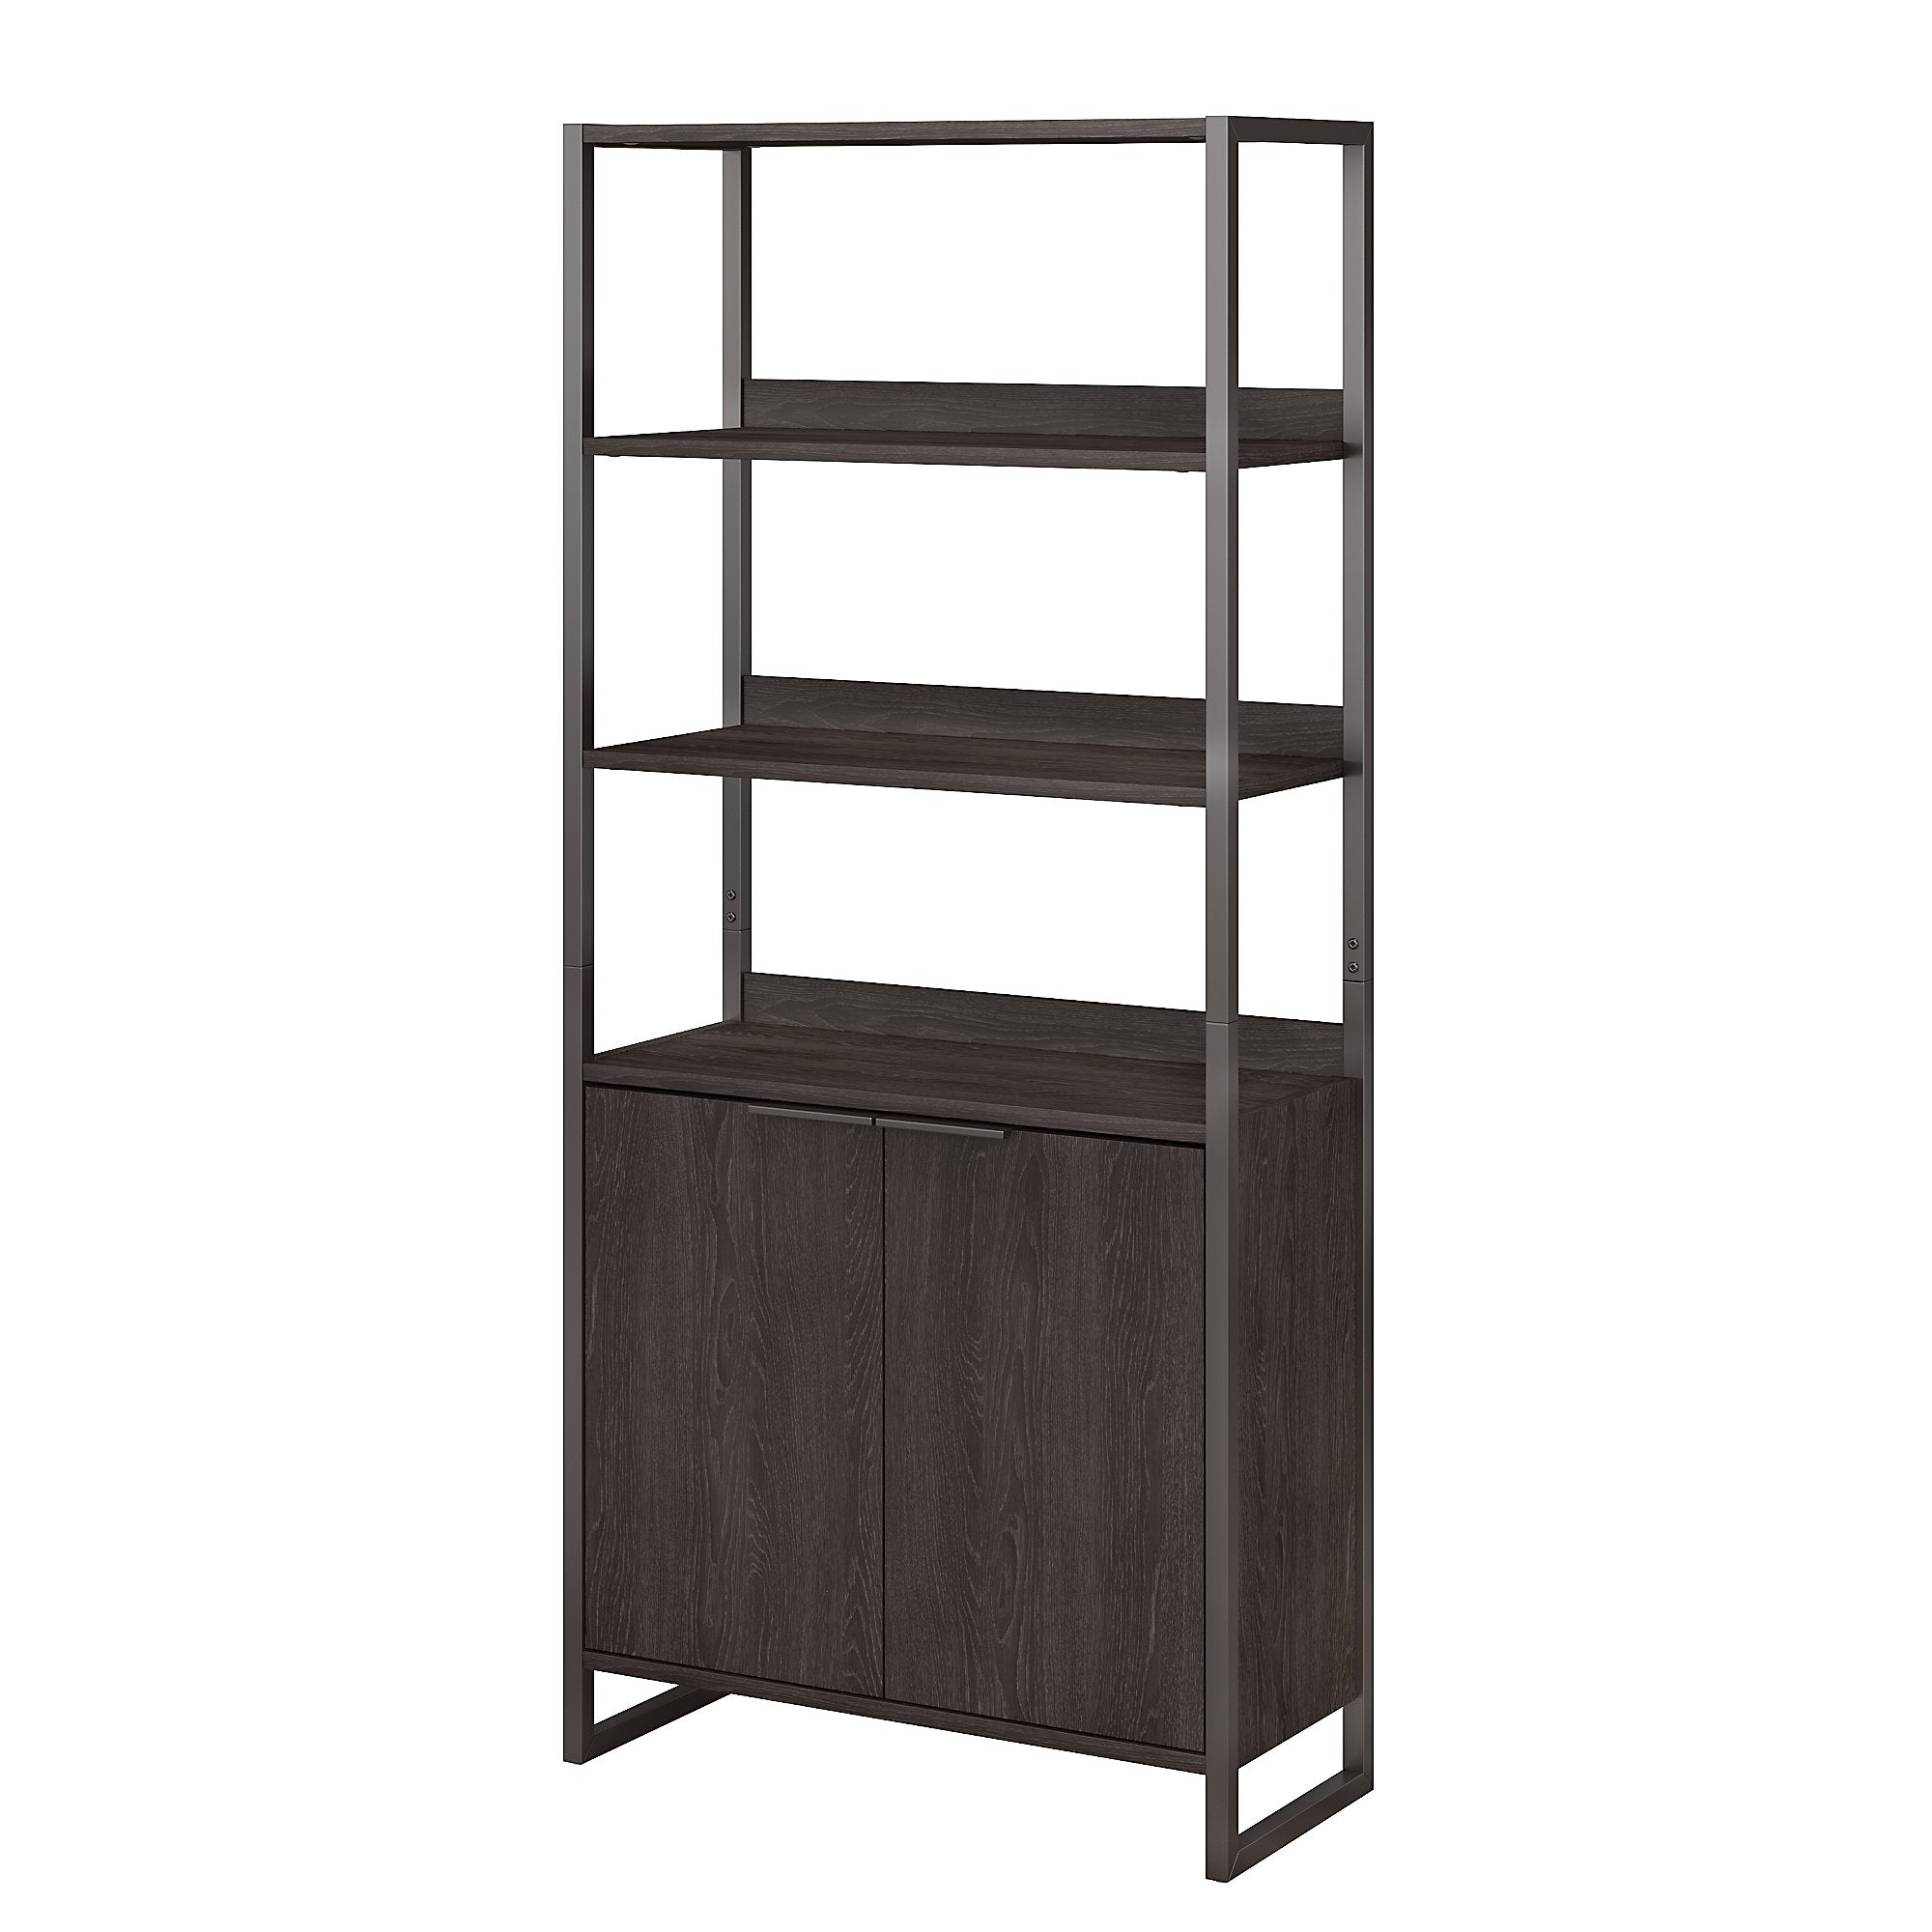 Office by kathy ireland® Charcoal Gray Atria 5 Shelf Bookcase with Doors